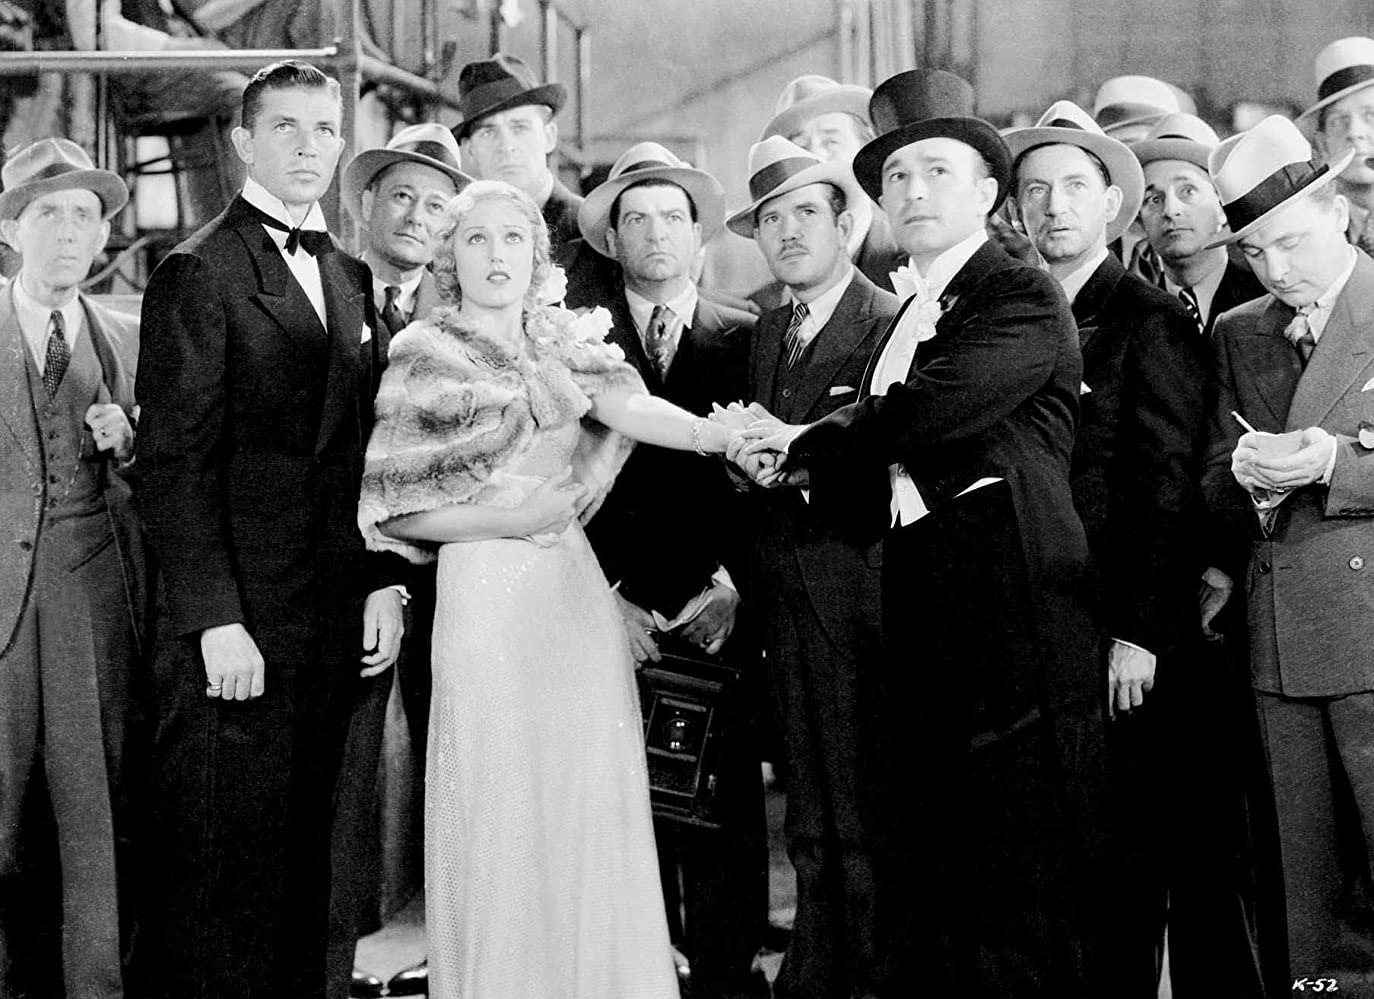 Walter Ackerman, Robert Armstrong, Roscoe Ates, Eddie Boland, Harry Bowen, Lynton Brent, Bruce Cabot, Frank Mills, and Fay Wray in King Kong (1933)